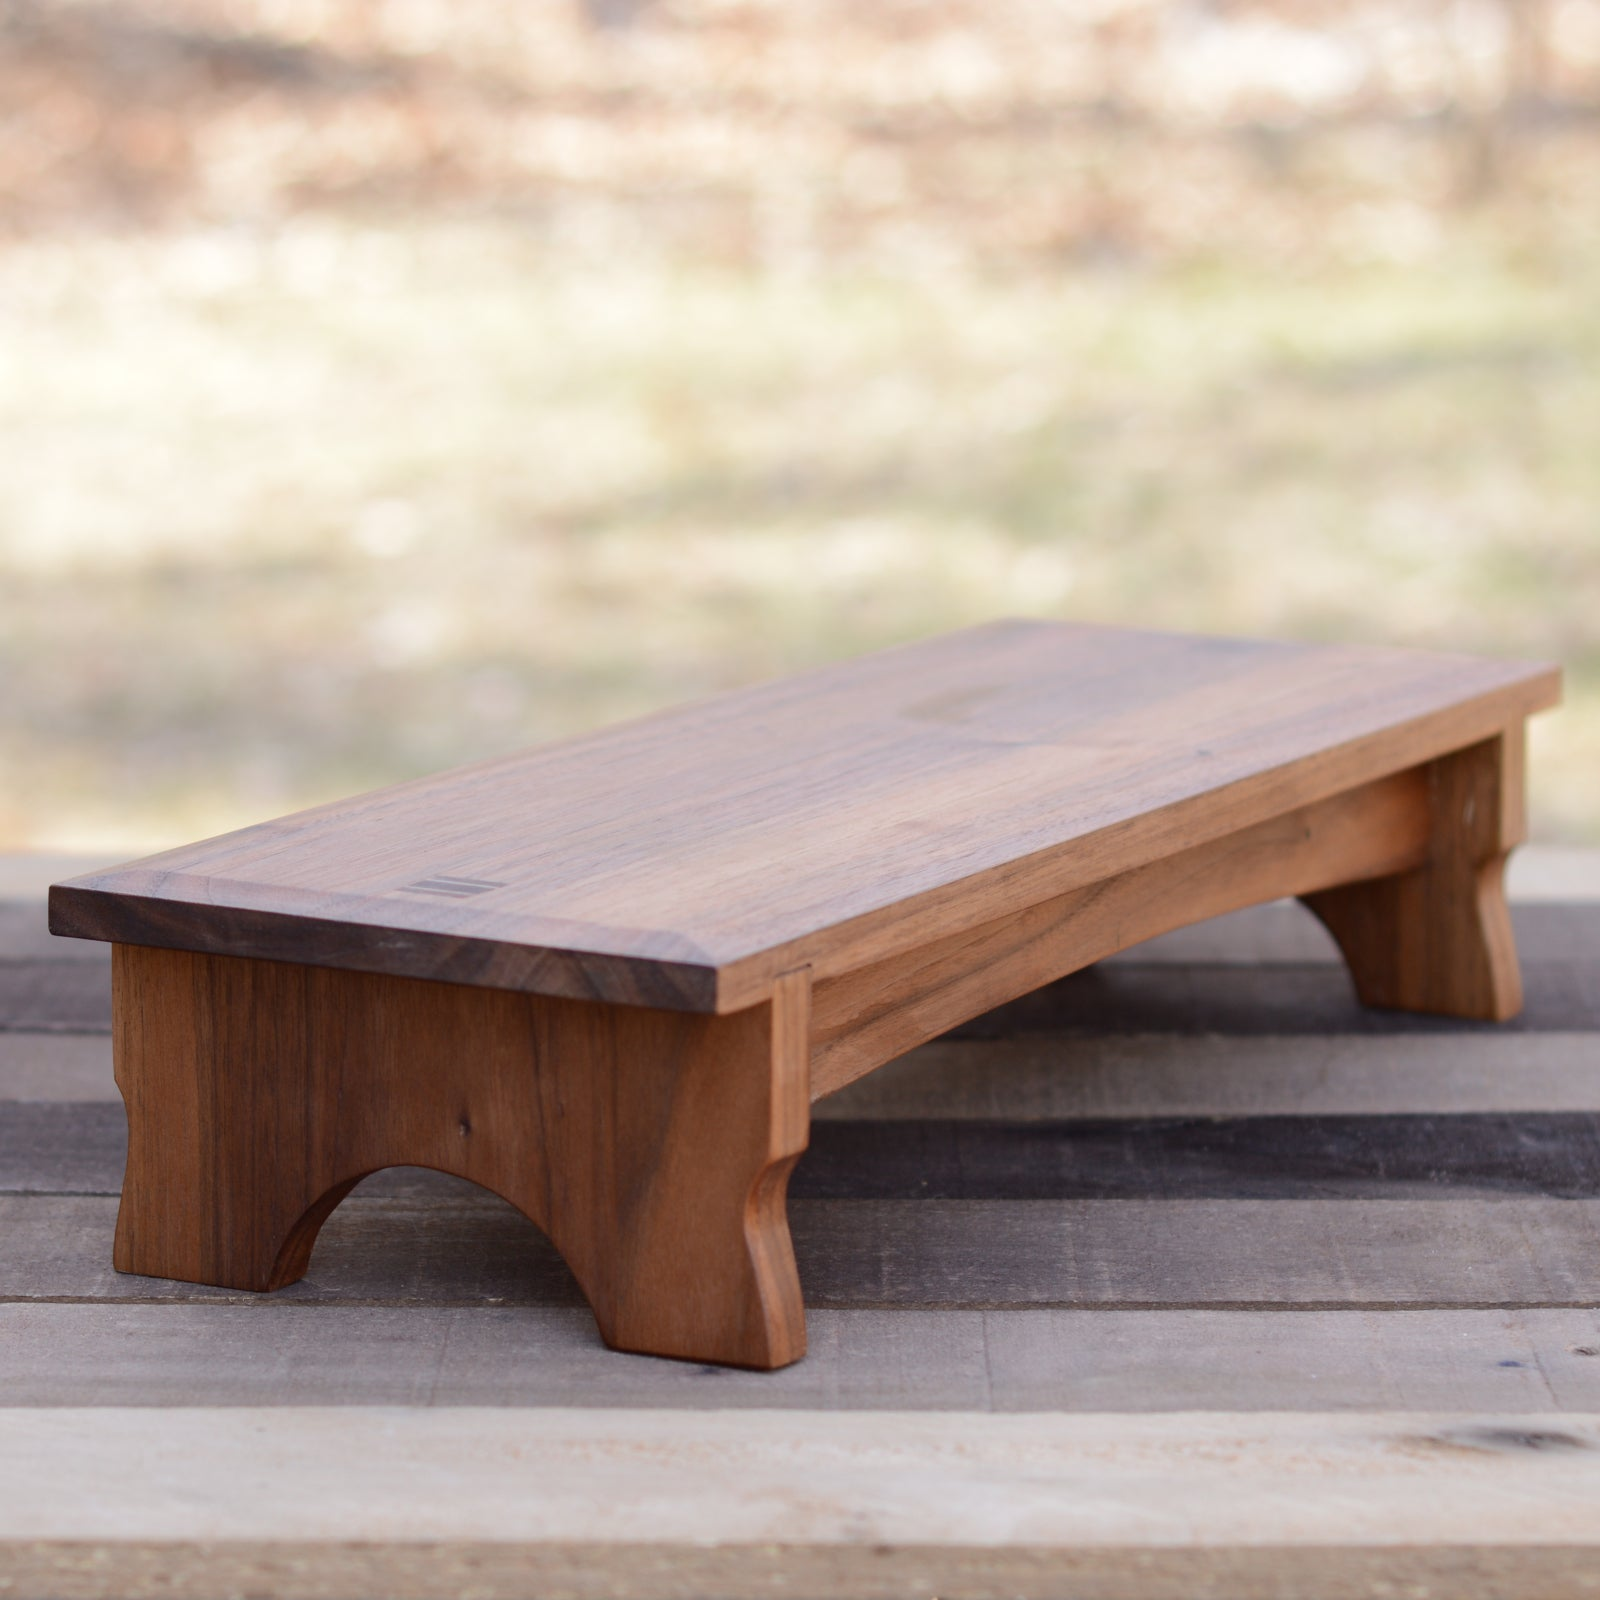 Bedside Kneeler / Prie Dieu in Walnut